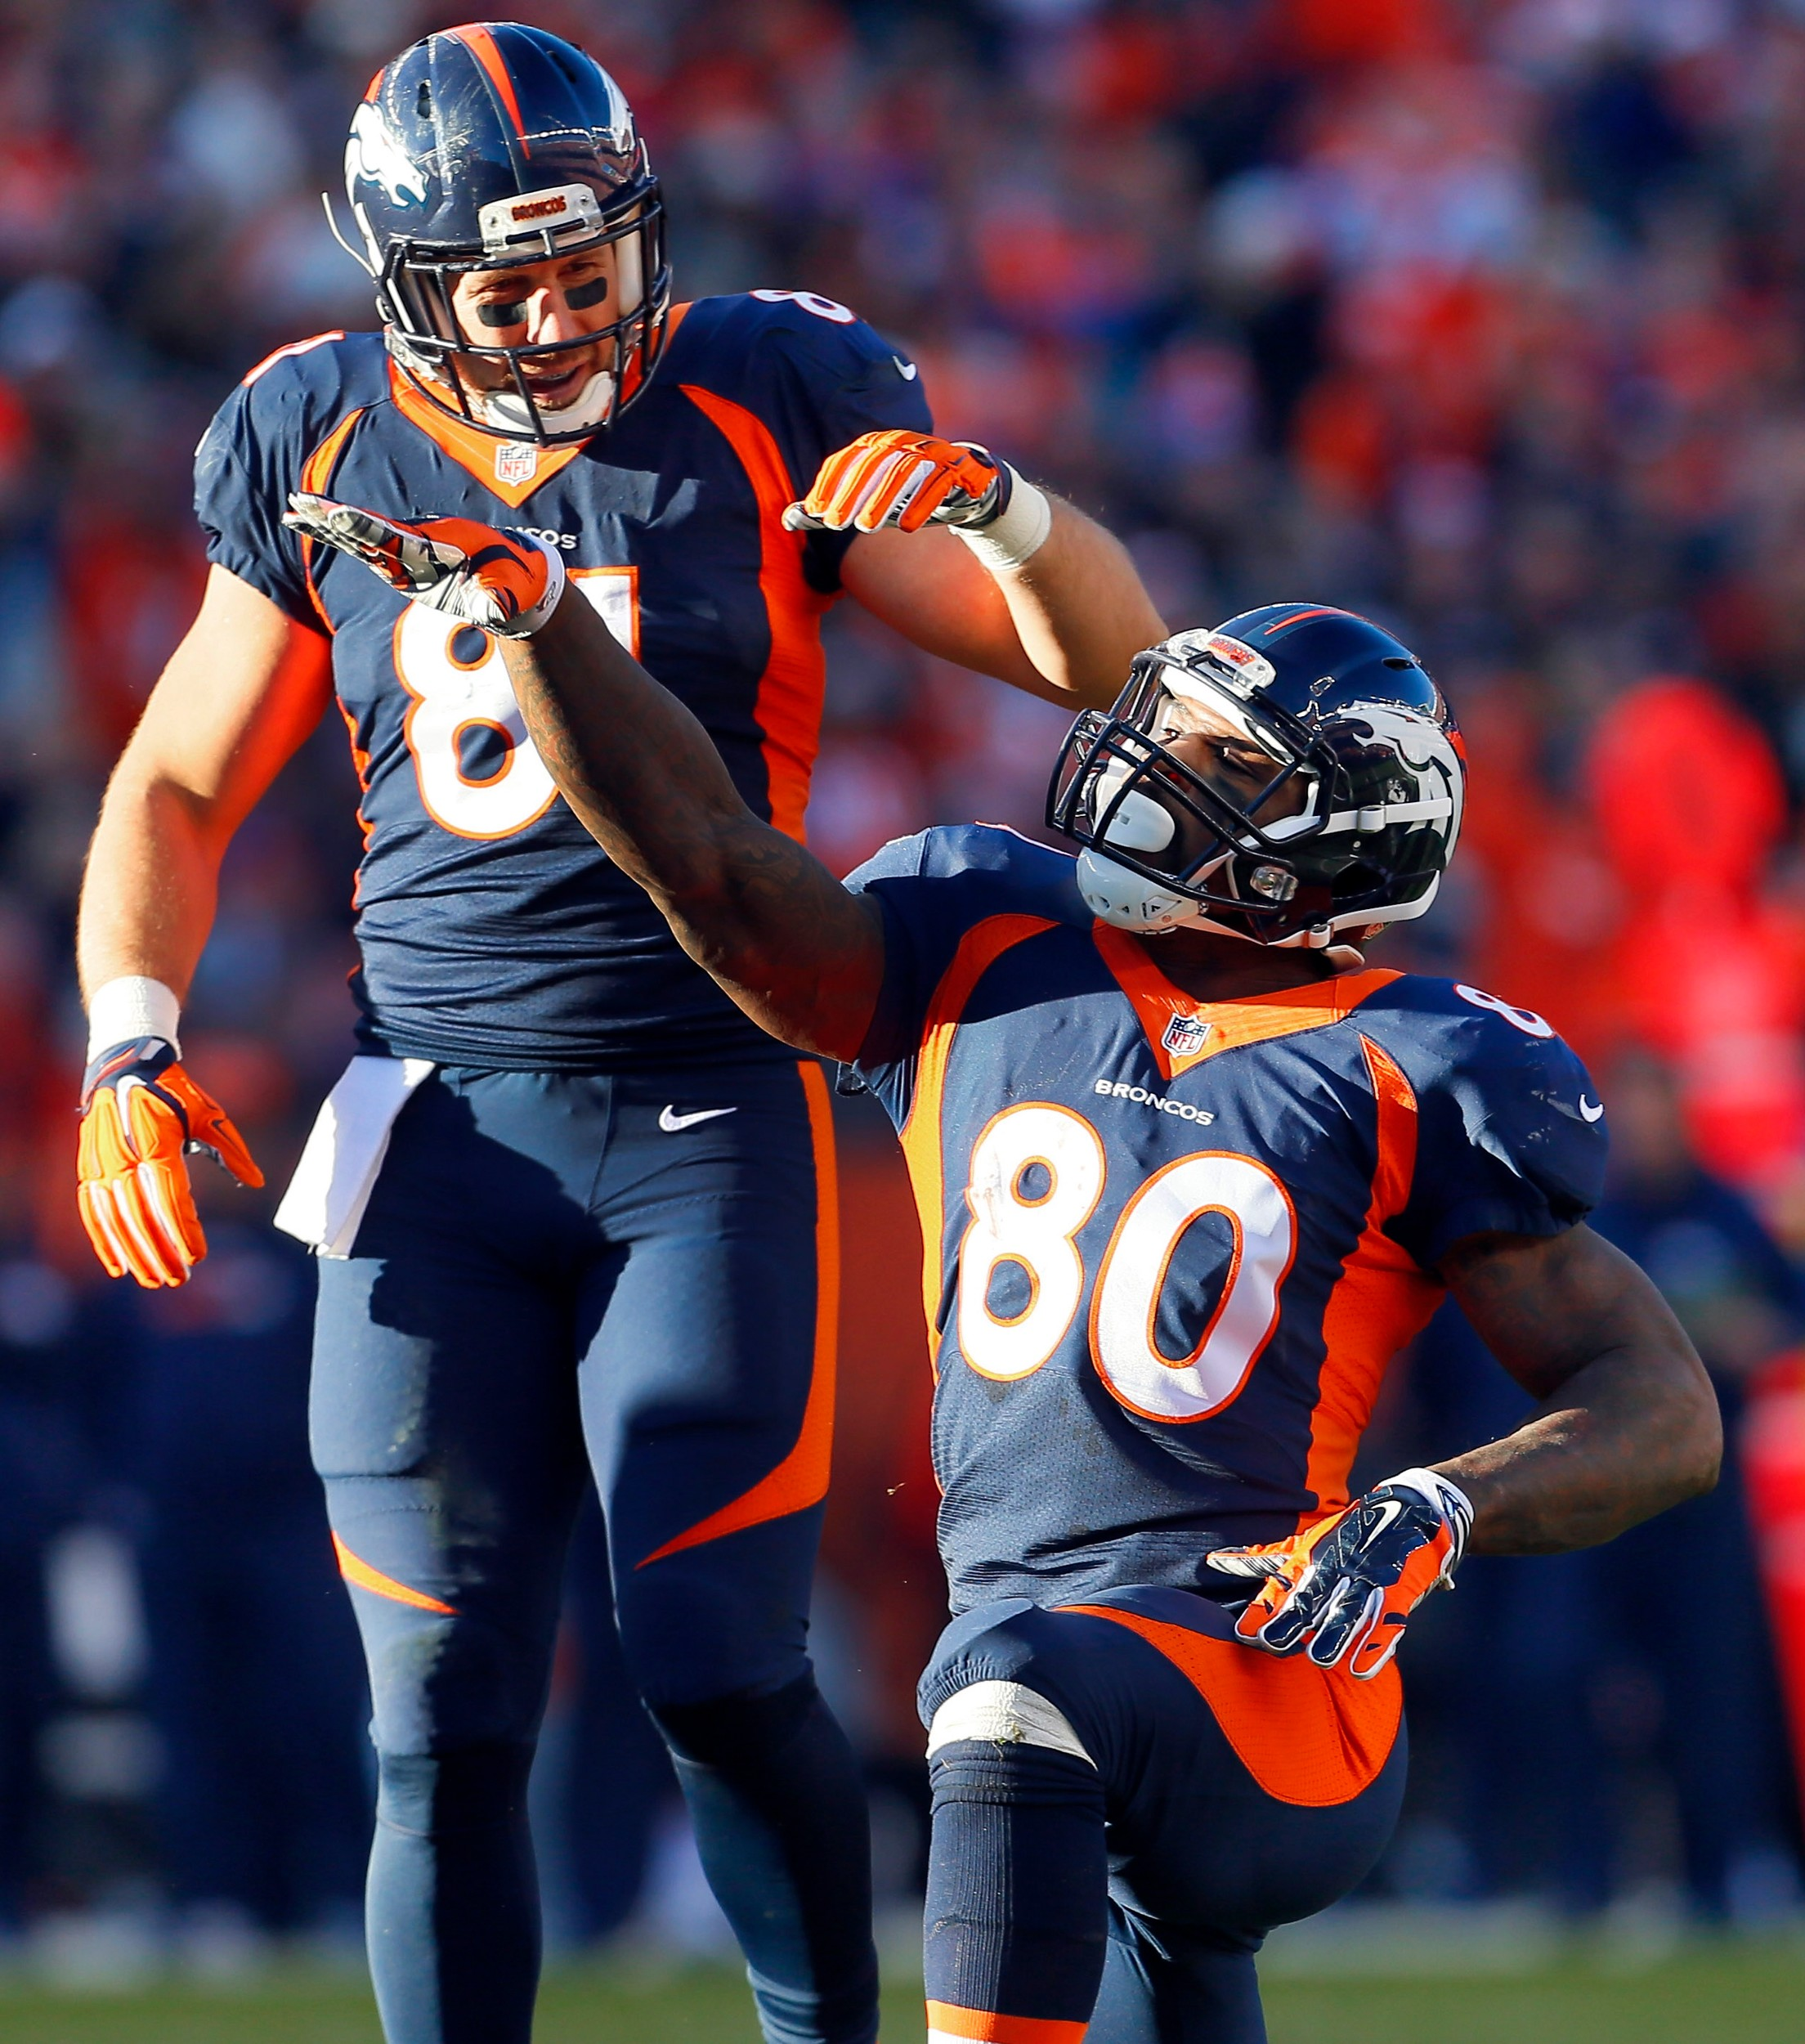 Vernon Davis hopes to play a role in Super Bowl with Broncos | The ...